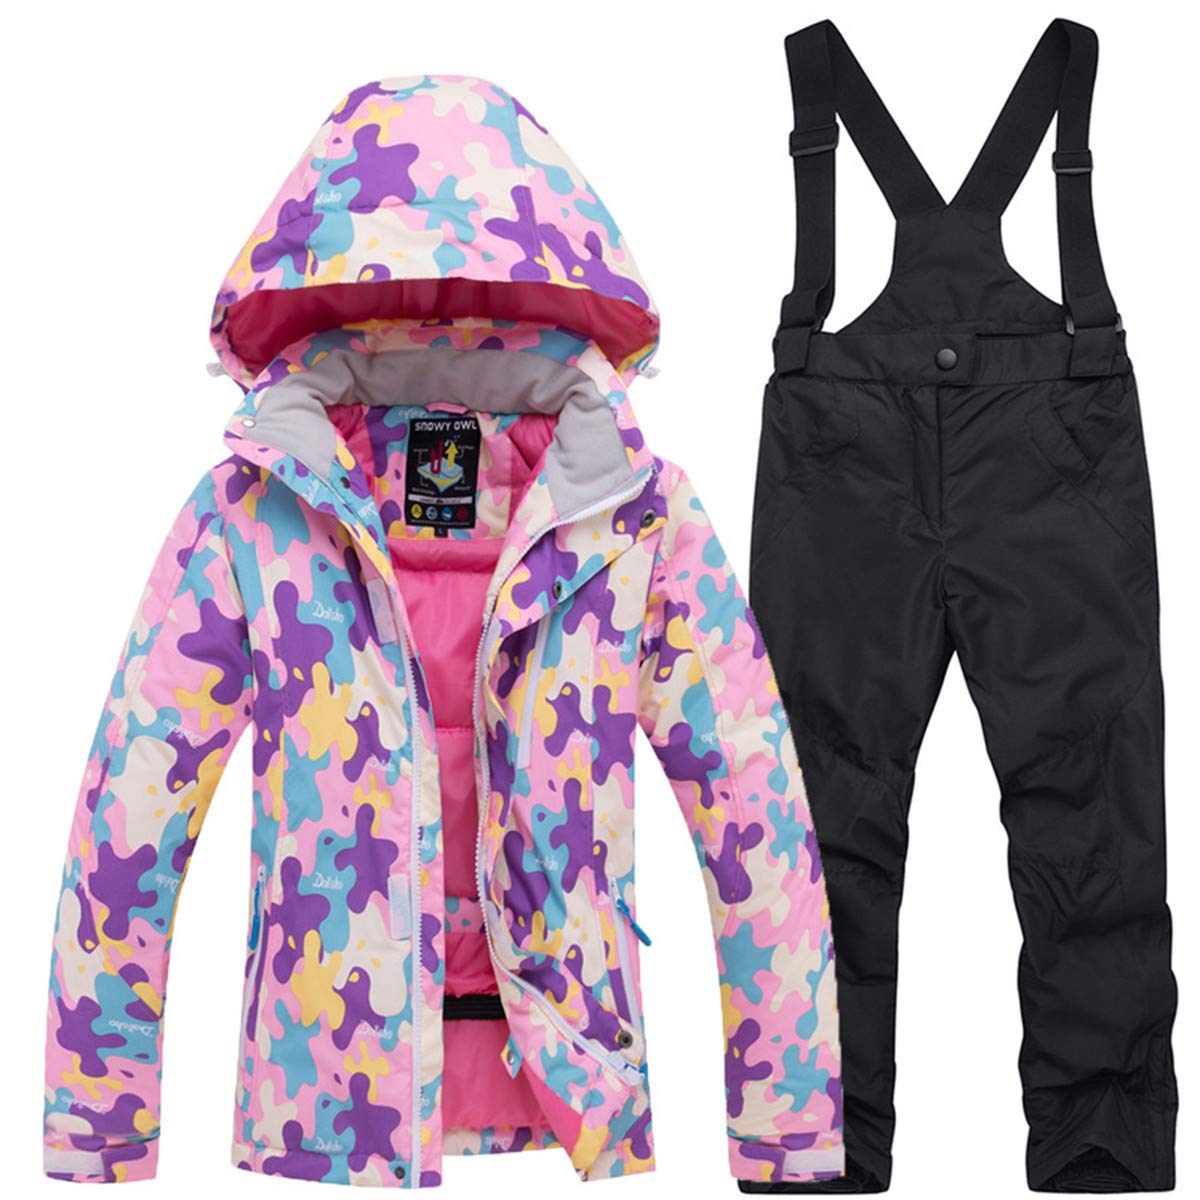 Little Girl's Boys's Outdoor Mountain Waterproof Windproof Snowboarding Jackets and Pants Set Insulated Snowboard Snowsuit Pink Black by REWANGOING